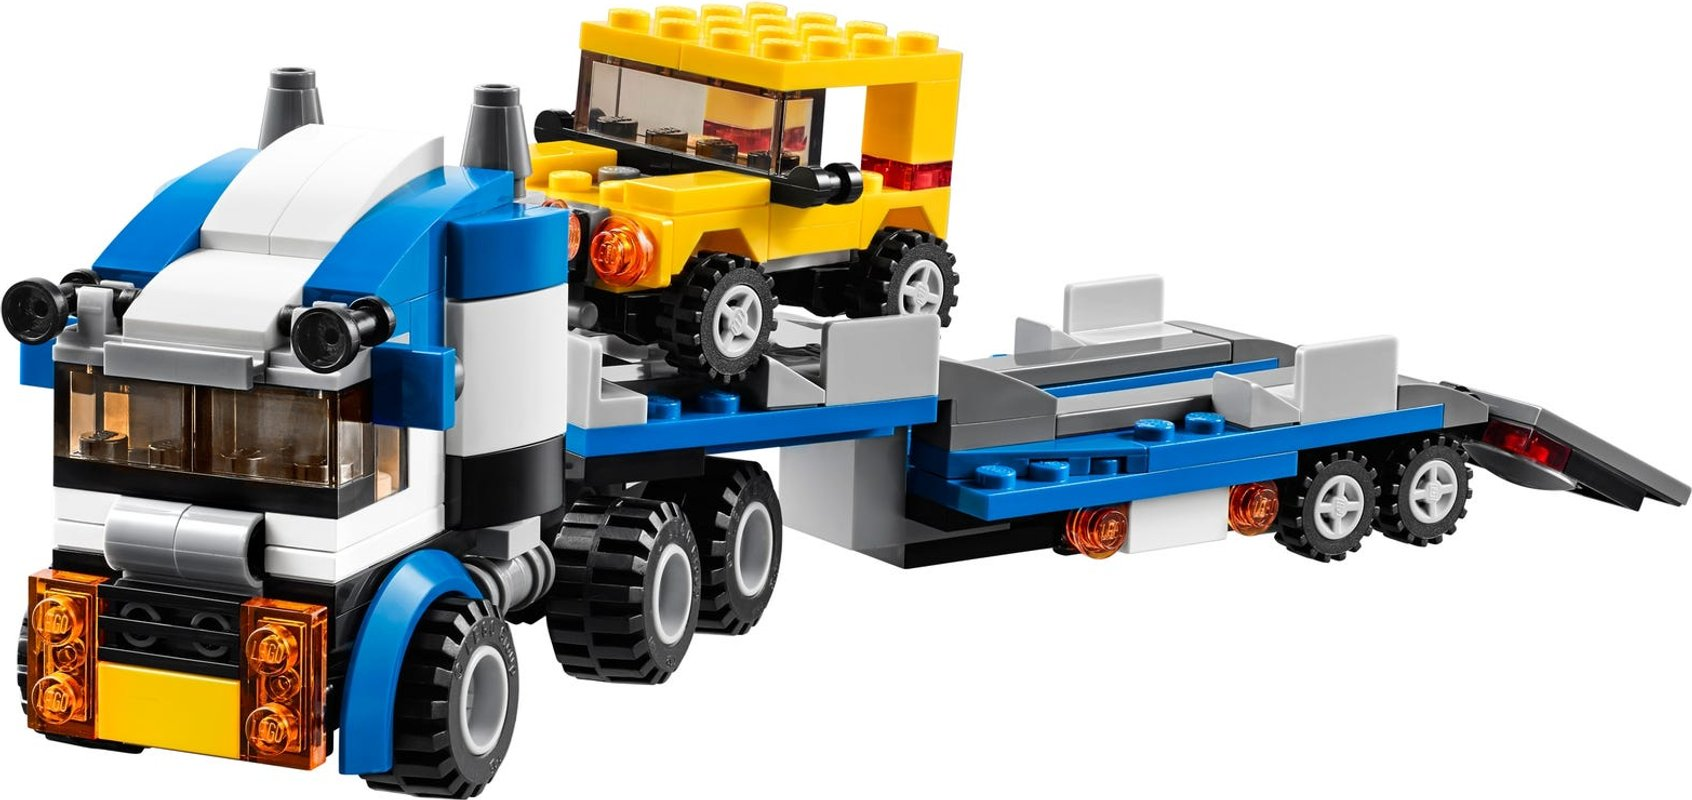 Vehicle Transporter components